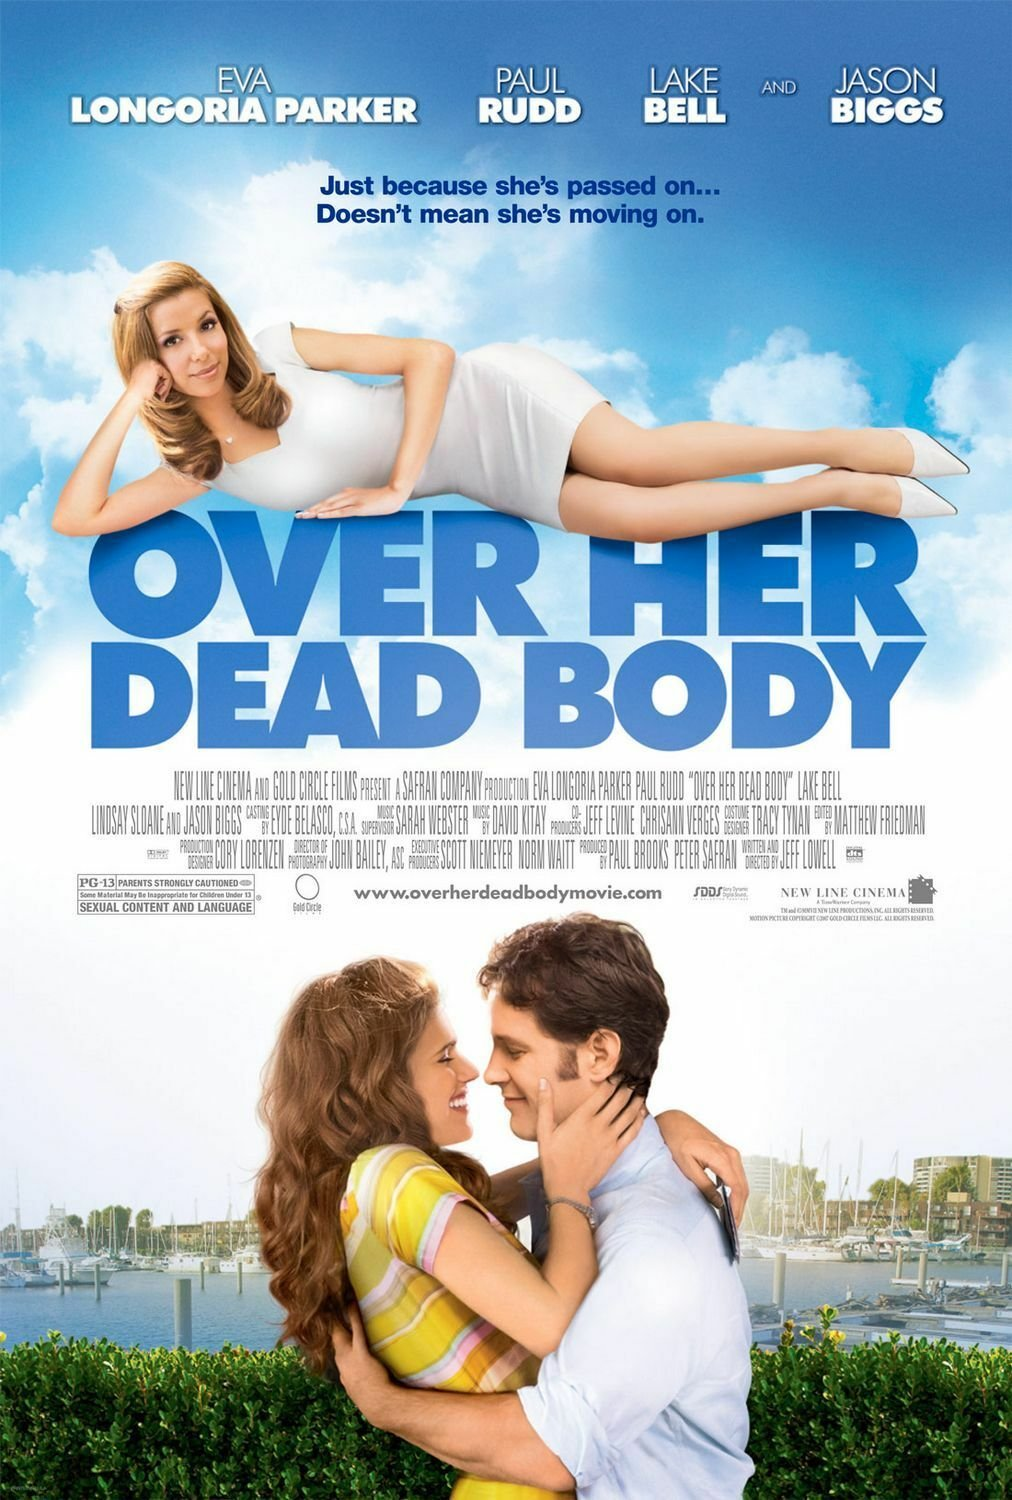 Over Her Dead Body Style A Poster 13x19 inches